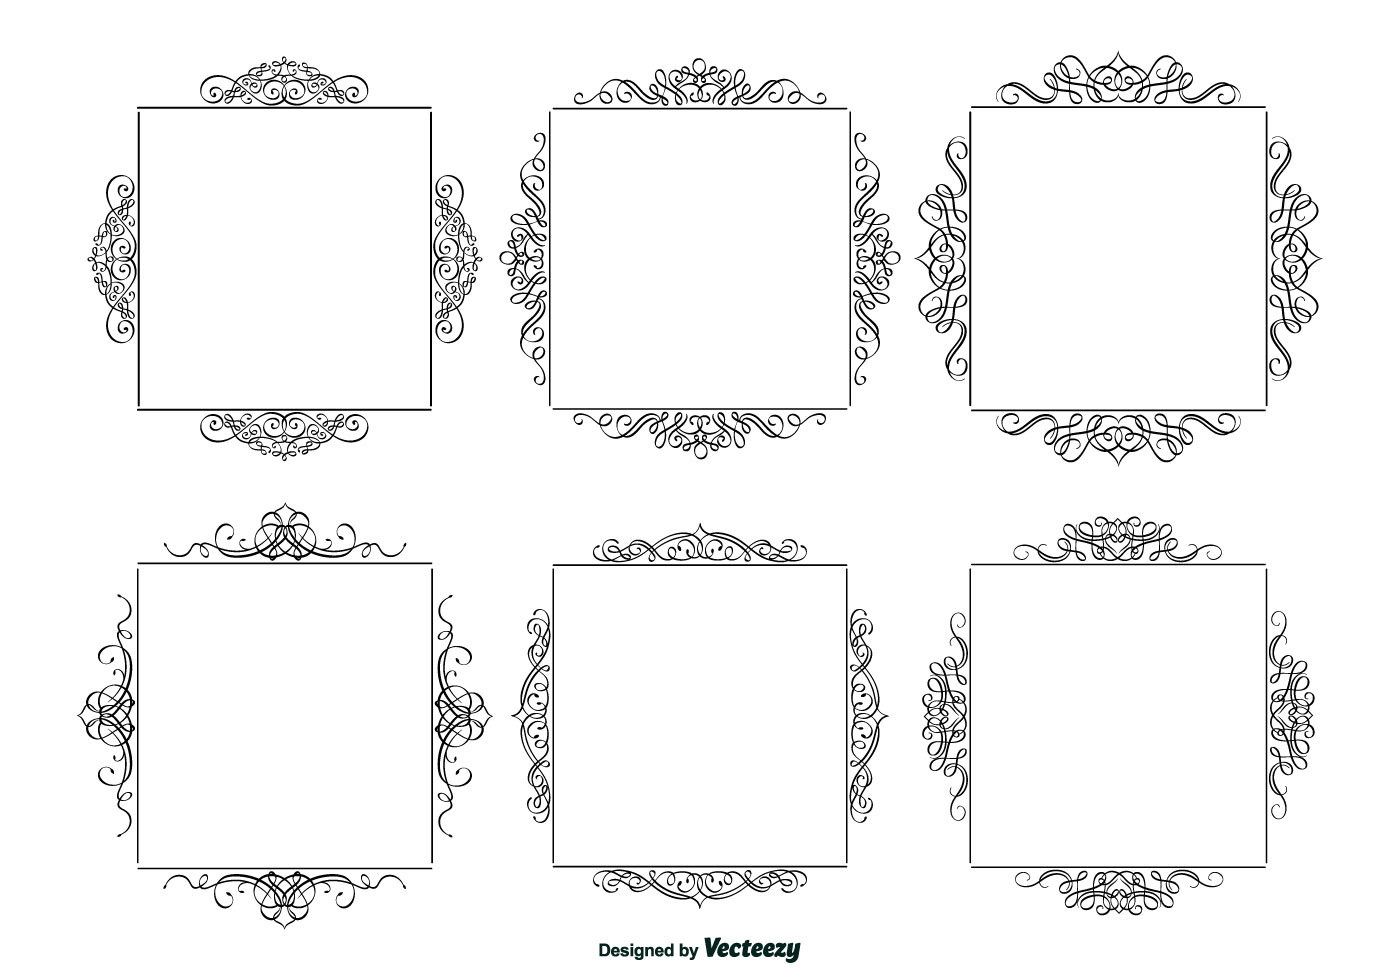 Decorative calligraphic frames set download free vector